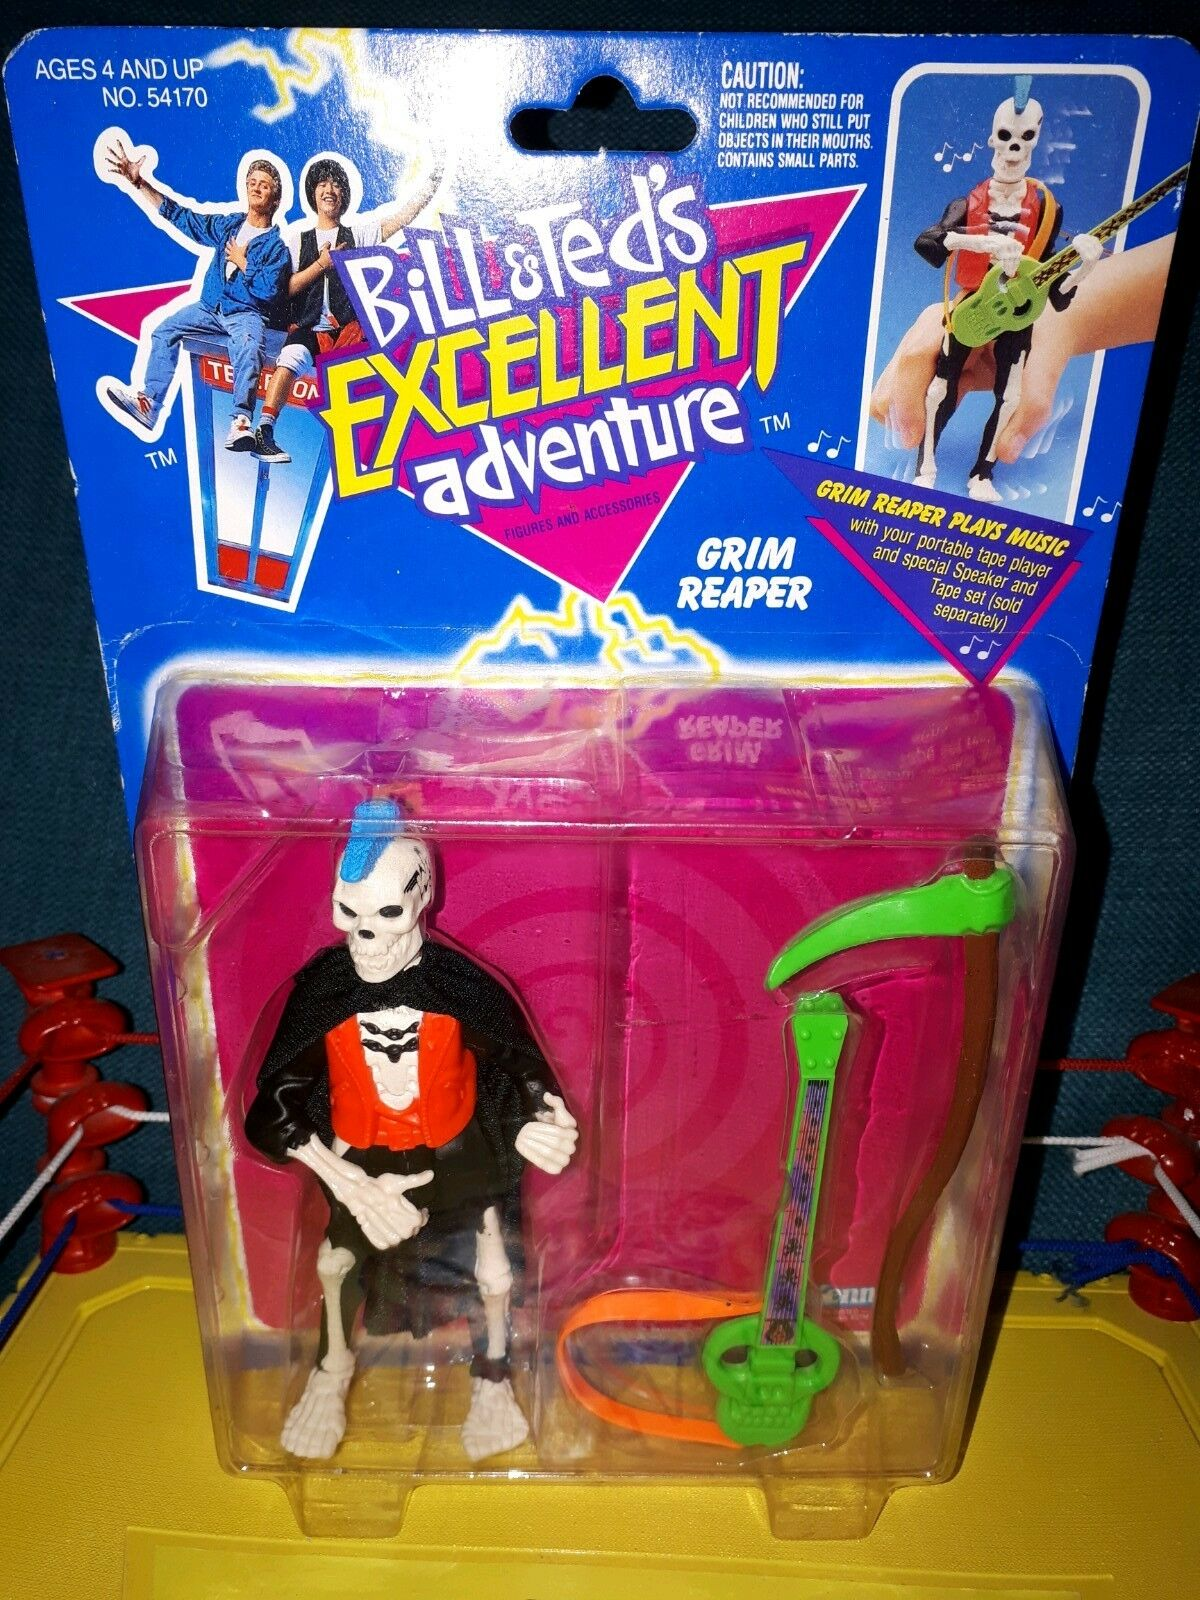 BILL AND TED'S EXCELLENT ADVENTURE - GRIM REAPER ACTION FIGURE KENNER 1991 NEW